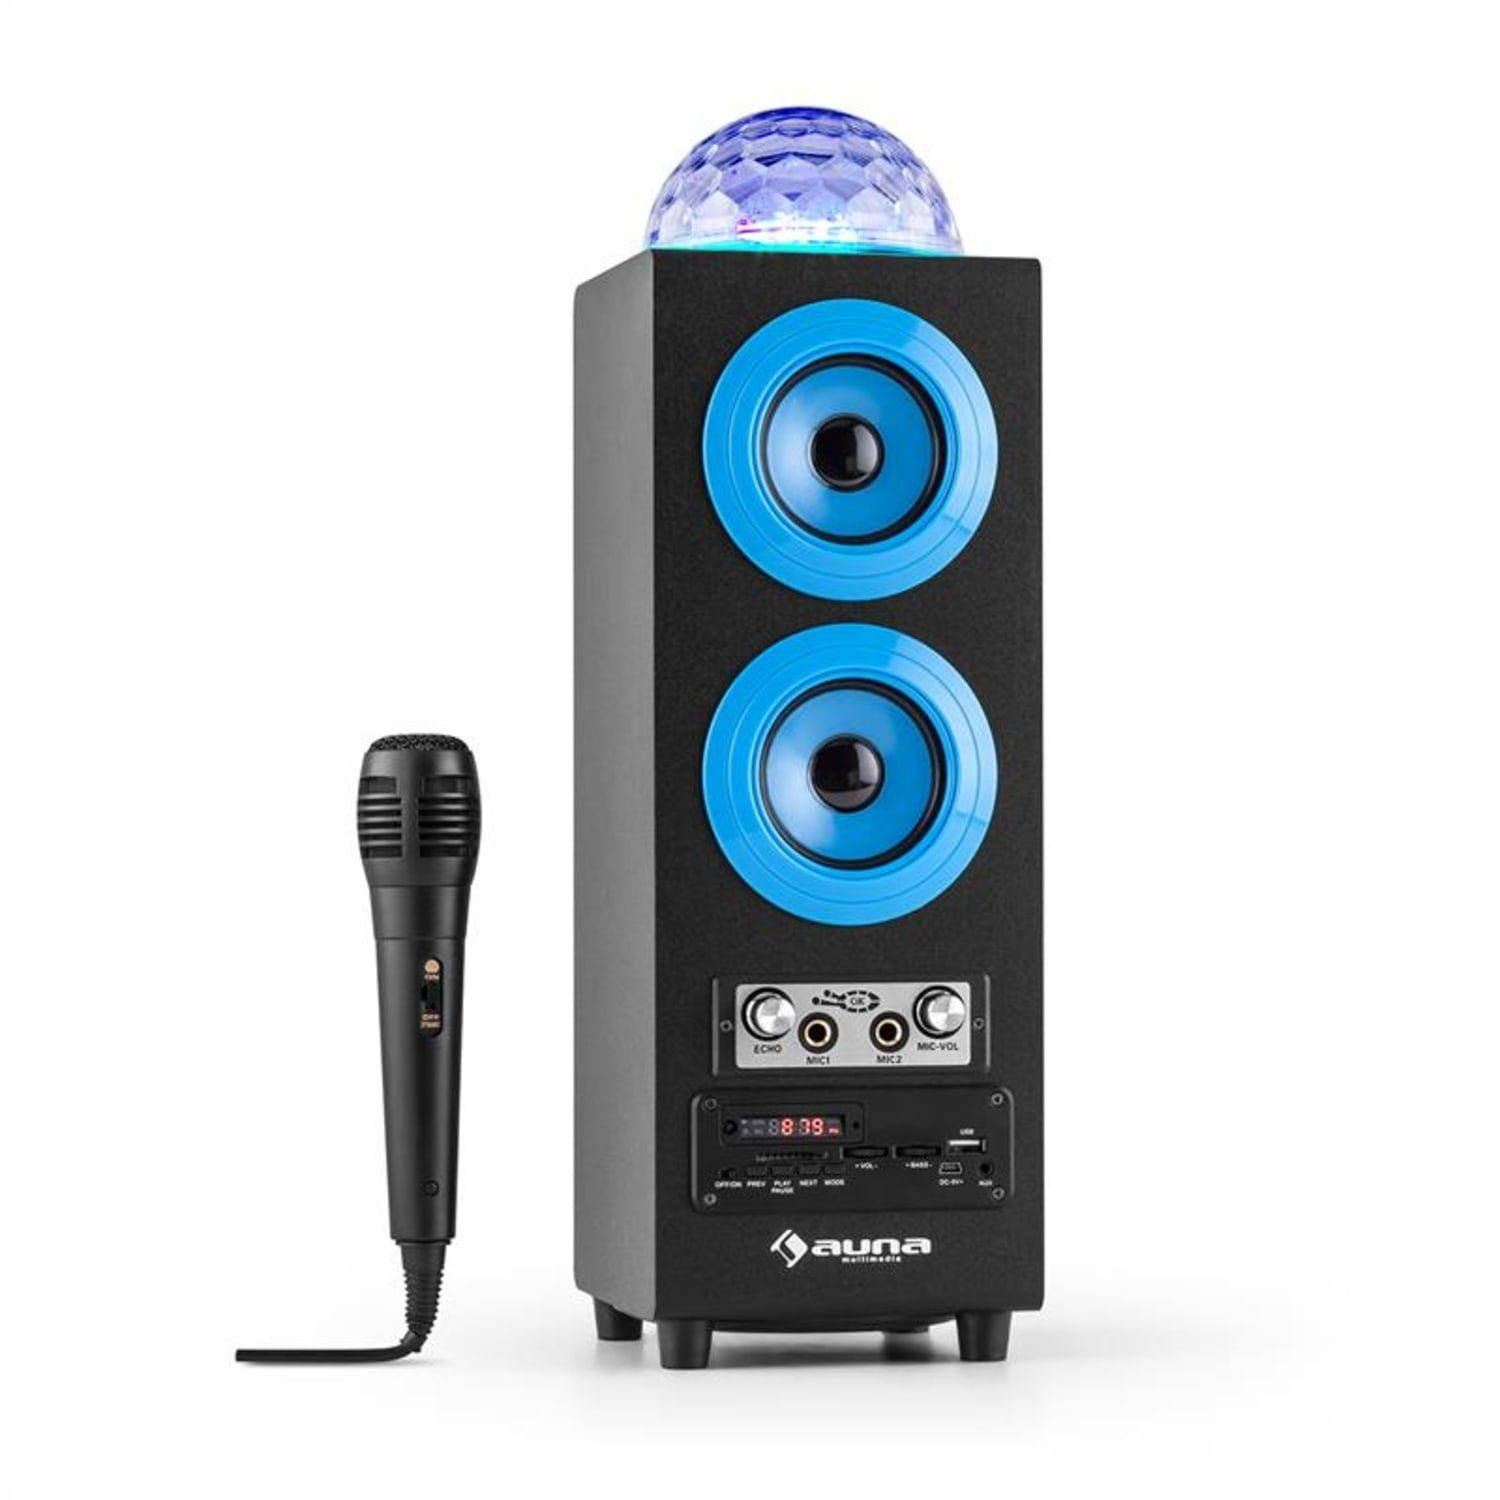 Auna Discostar Blue Portabler 2 1 Bluetooth Lautsprecher Usb Akku Led Mikro Bluetooth Speaker Online Kaufen Otto